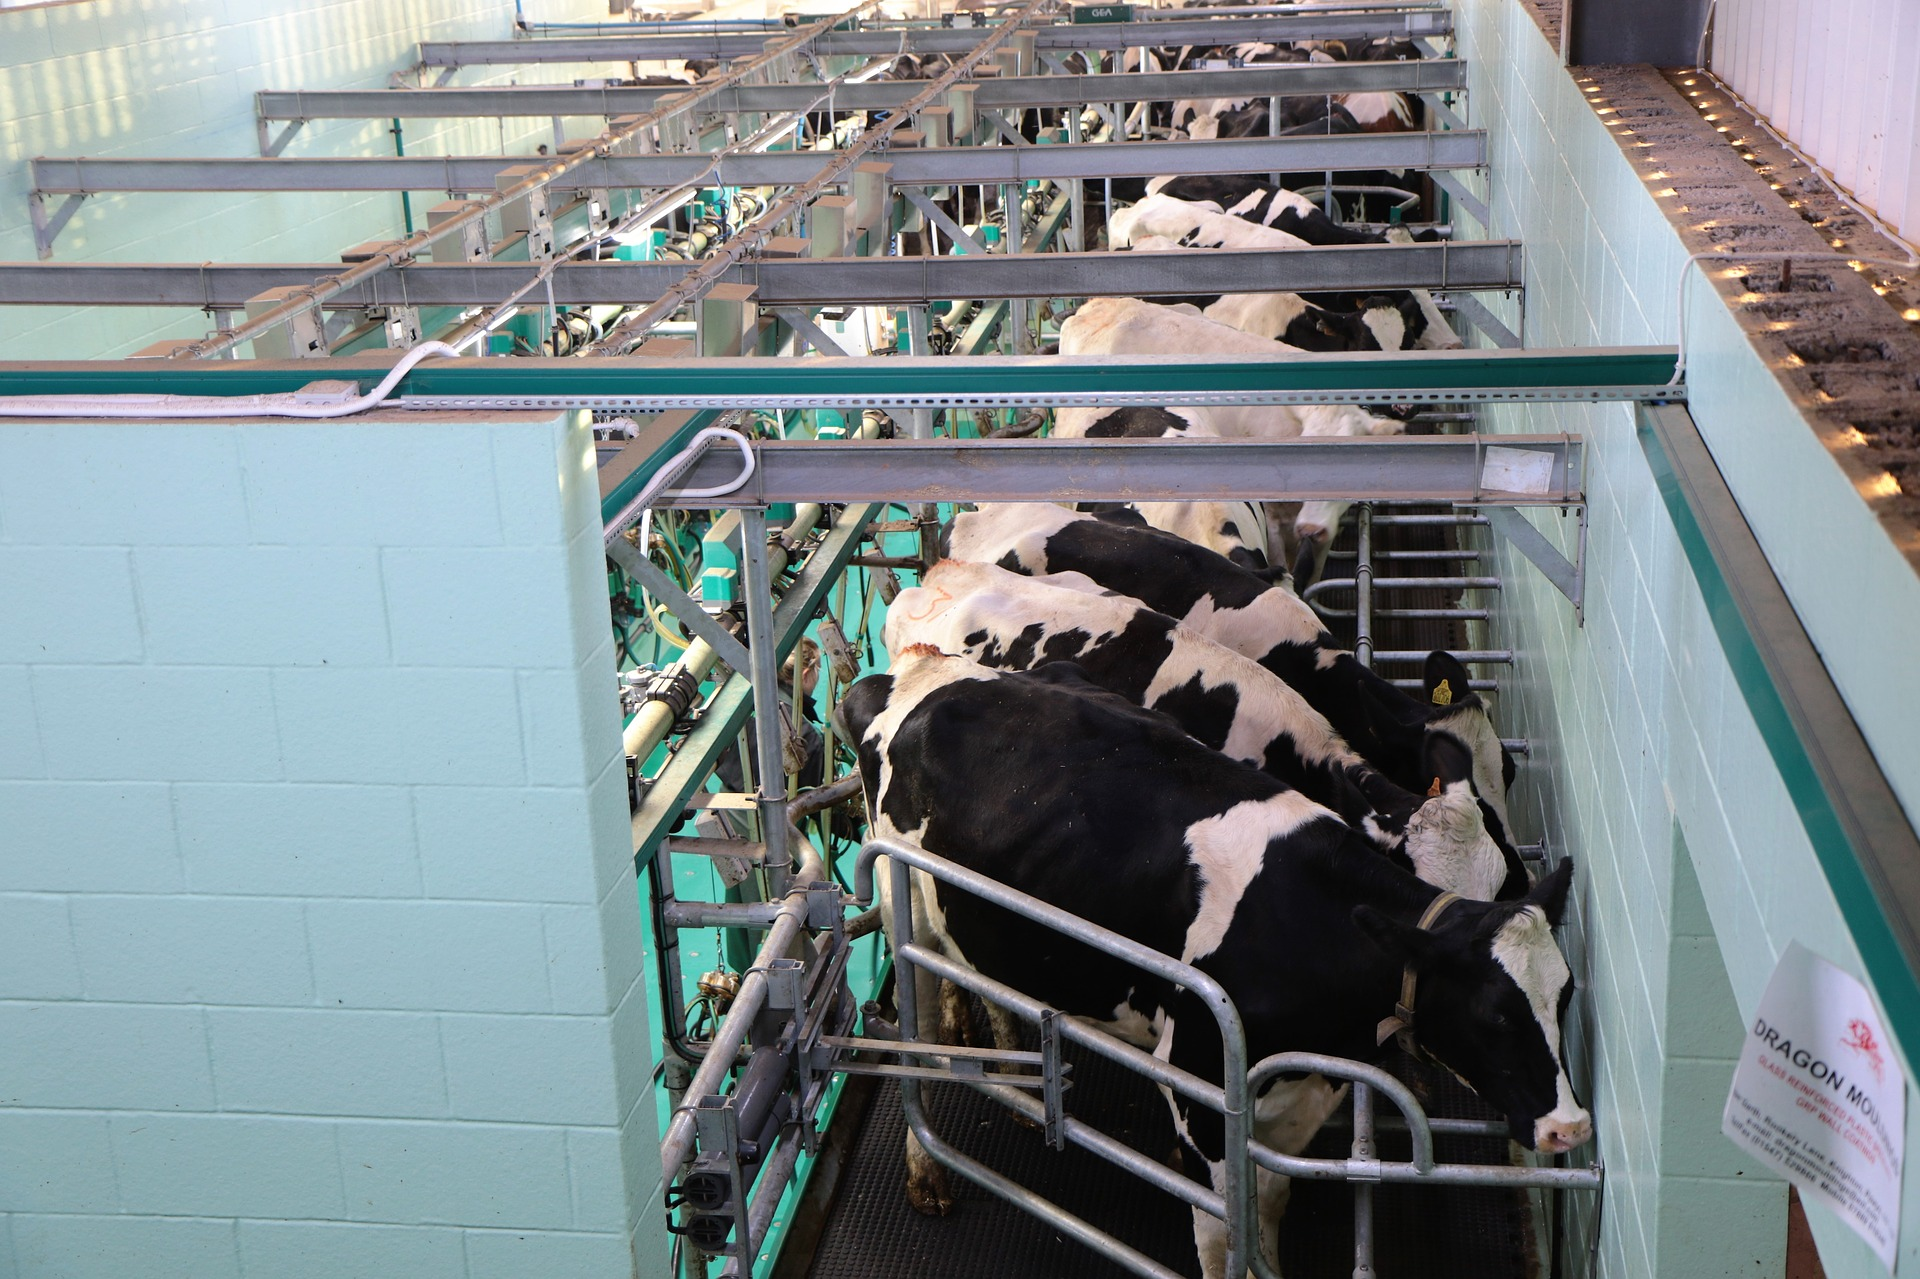 Cows hooked up to machines in an industrial milking parlor on a factory farm